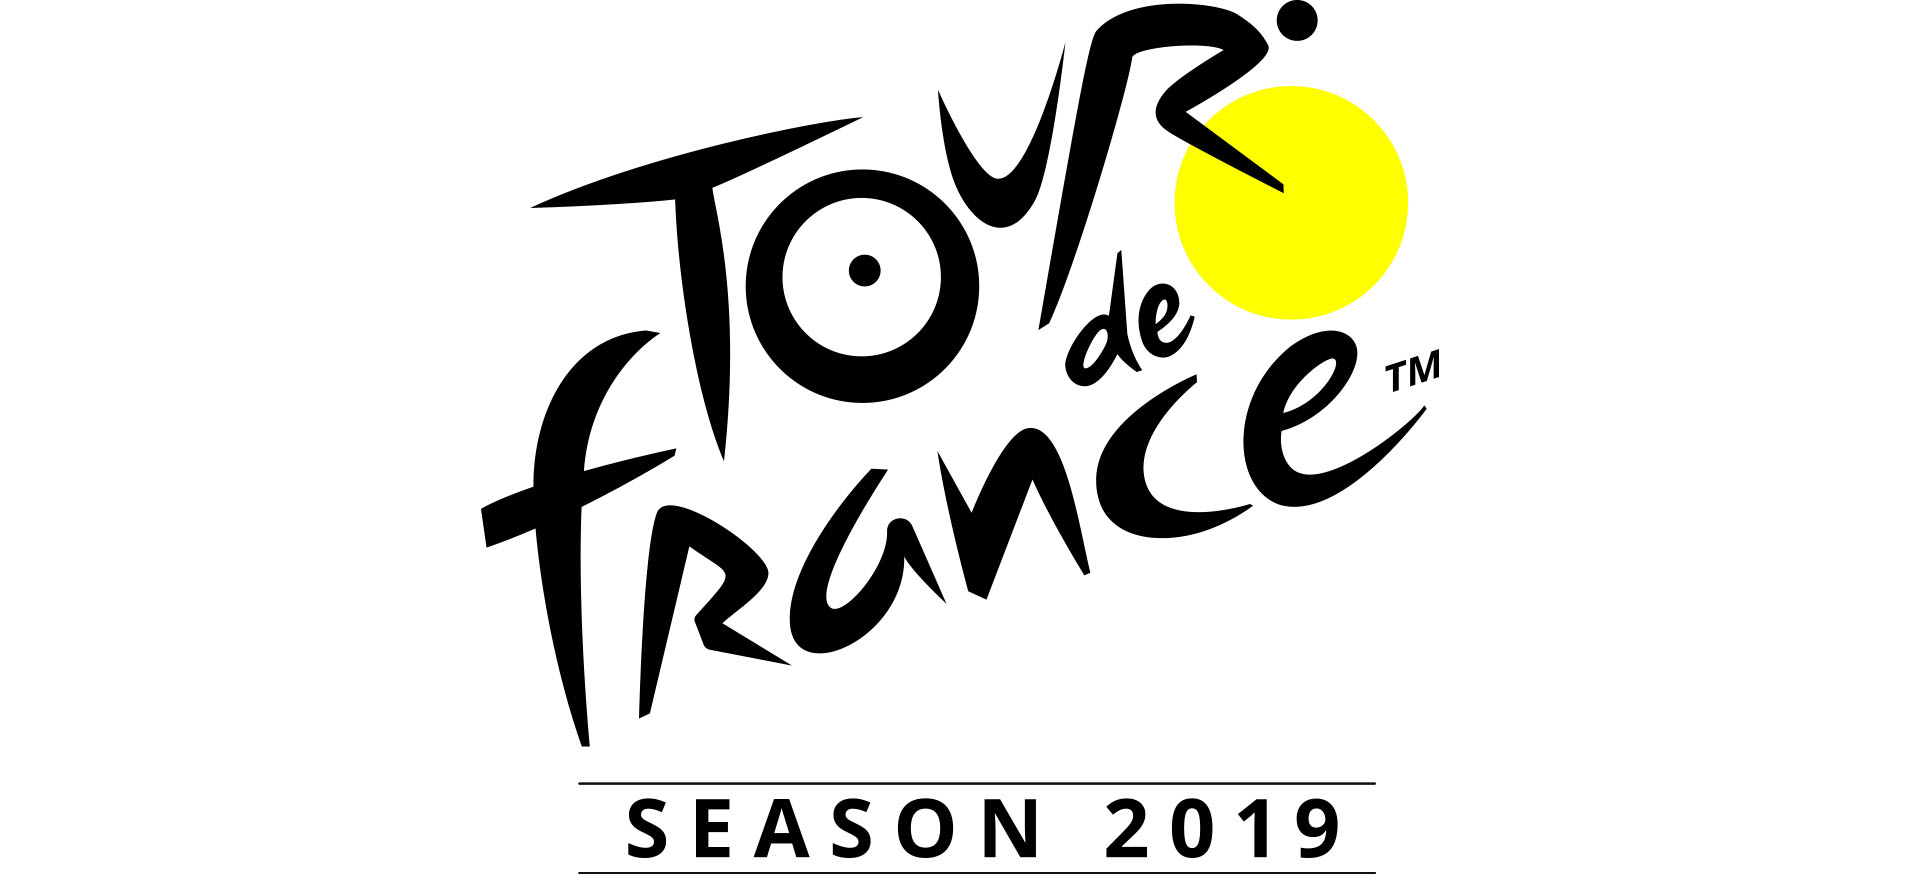 Tour De France Coming To Playstation 4 And Xbox One